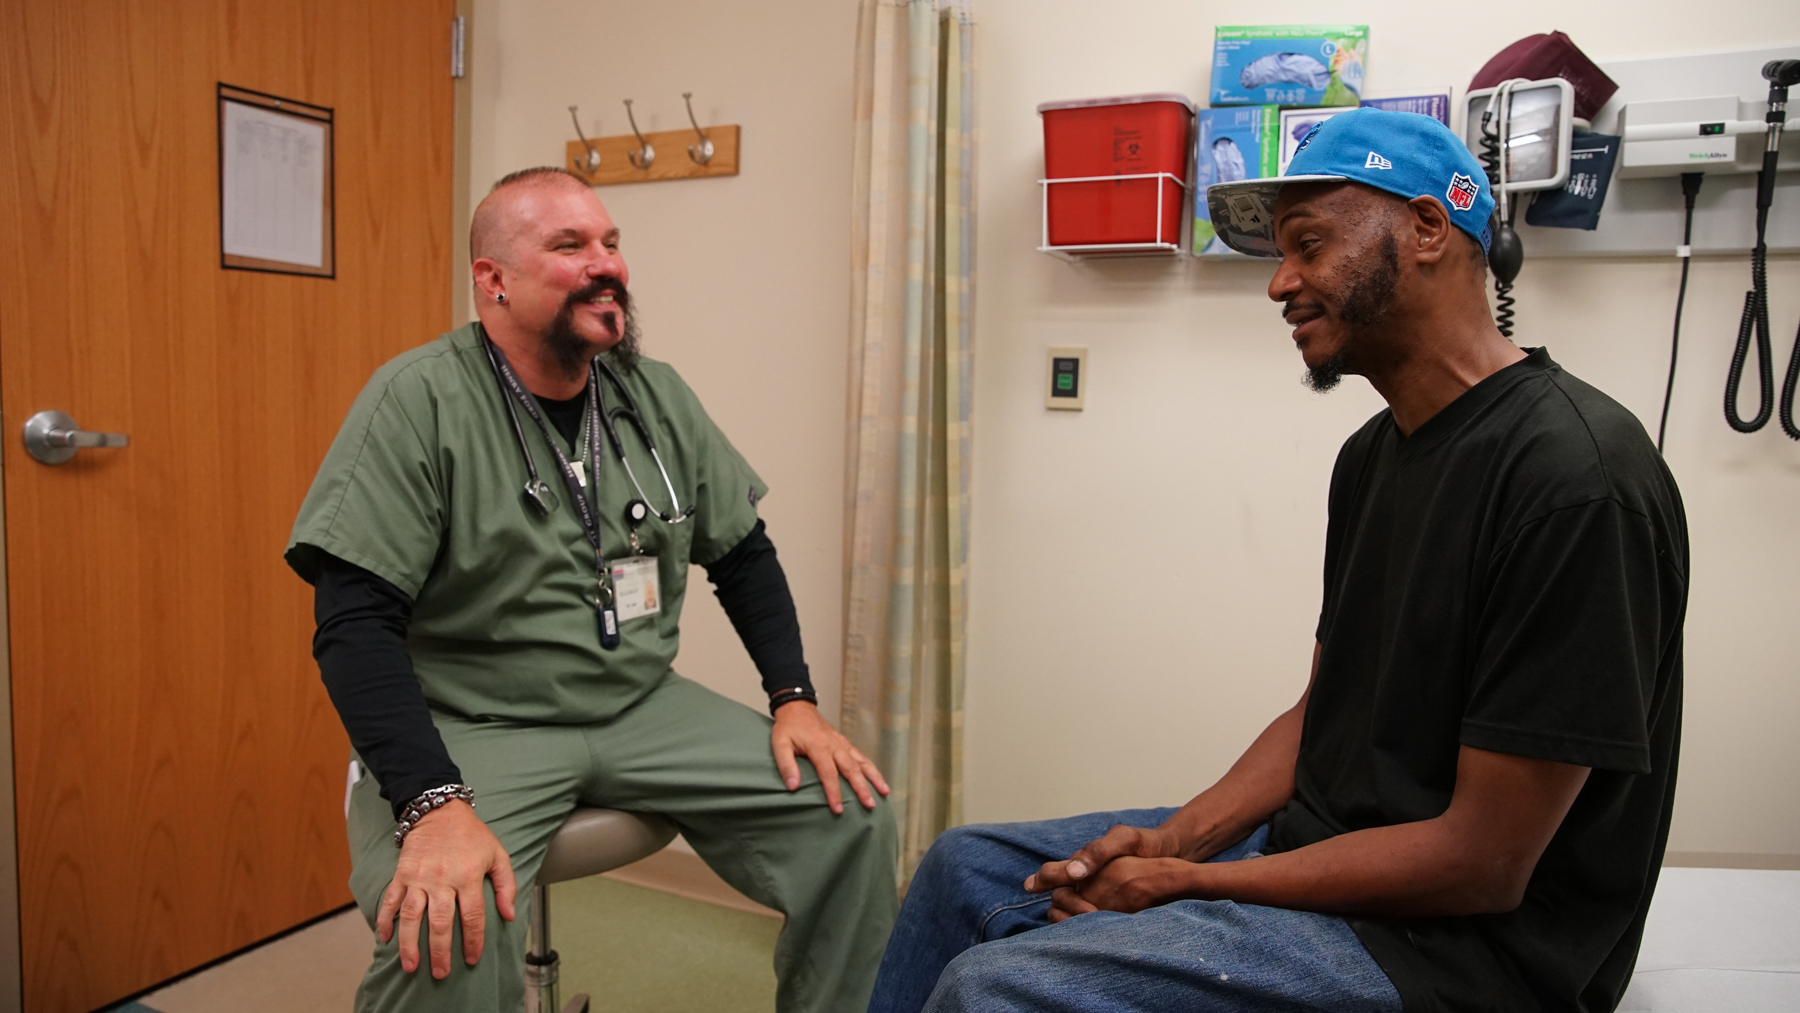 Eric Walker, 48, of Detroit and Dr. Jamie Hall after their appointment at CHASS (Noah Smith/ Direct Relief)